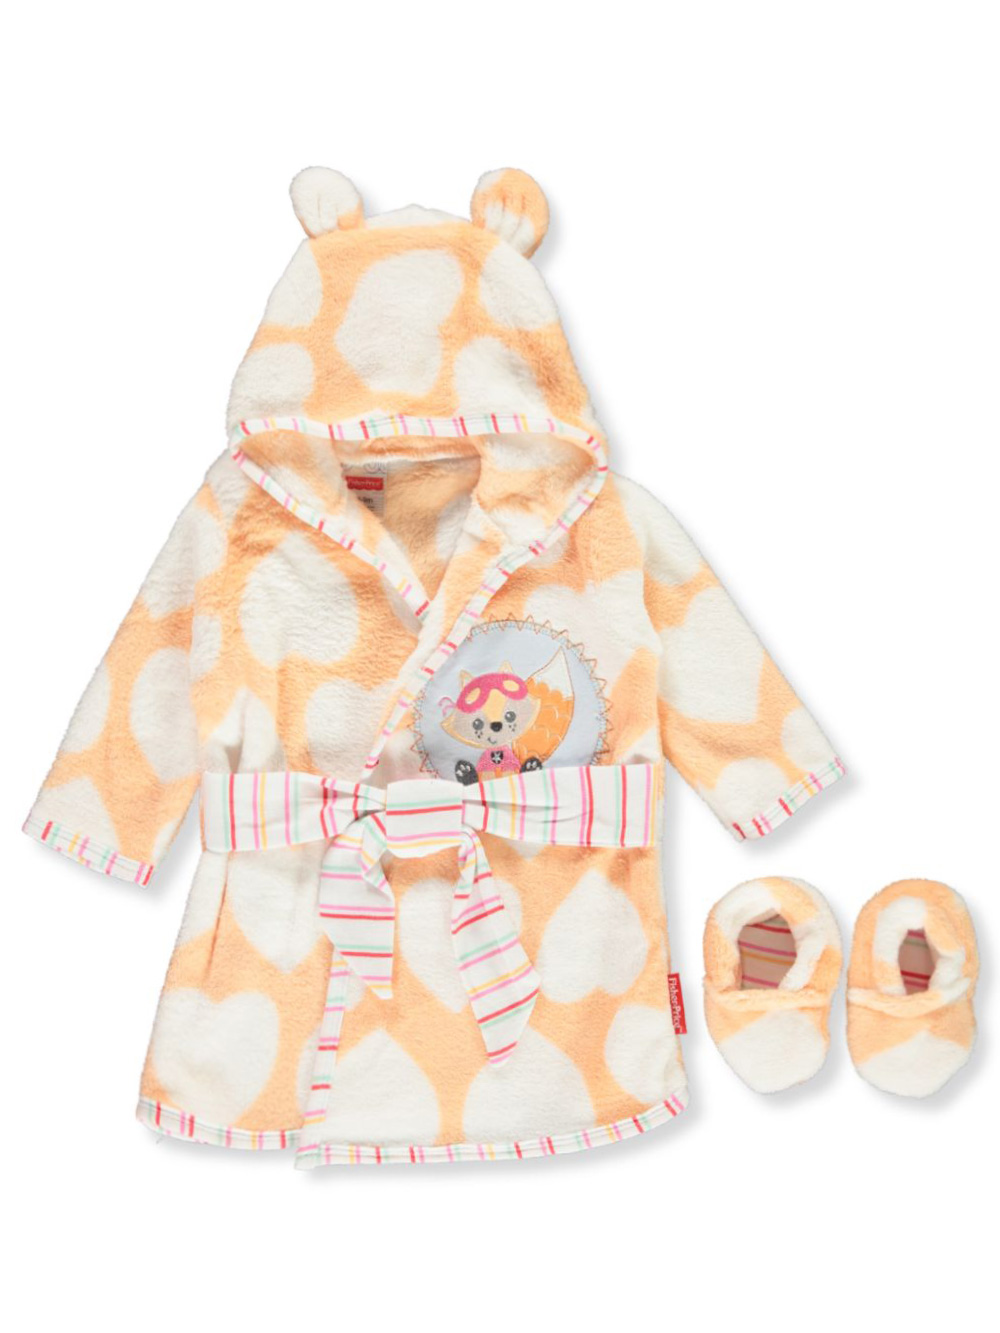 Pajamas Hooded Robe and Slippers Set